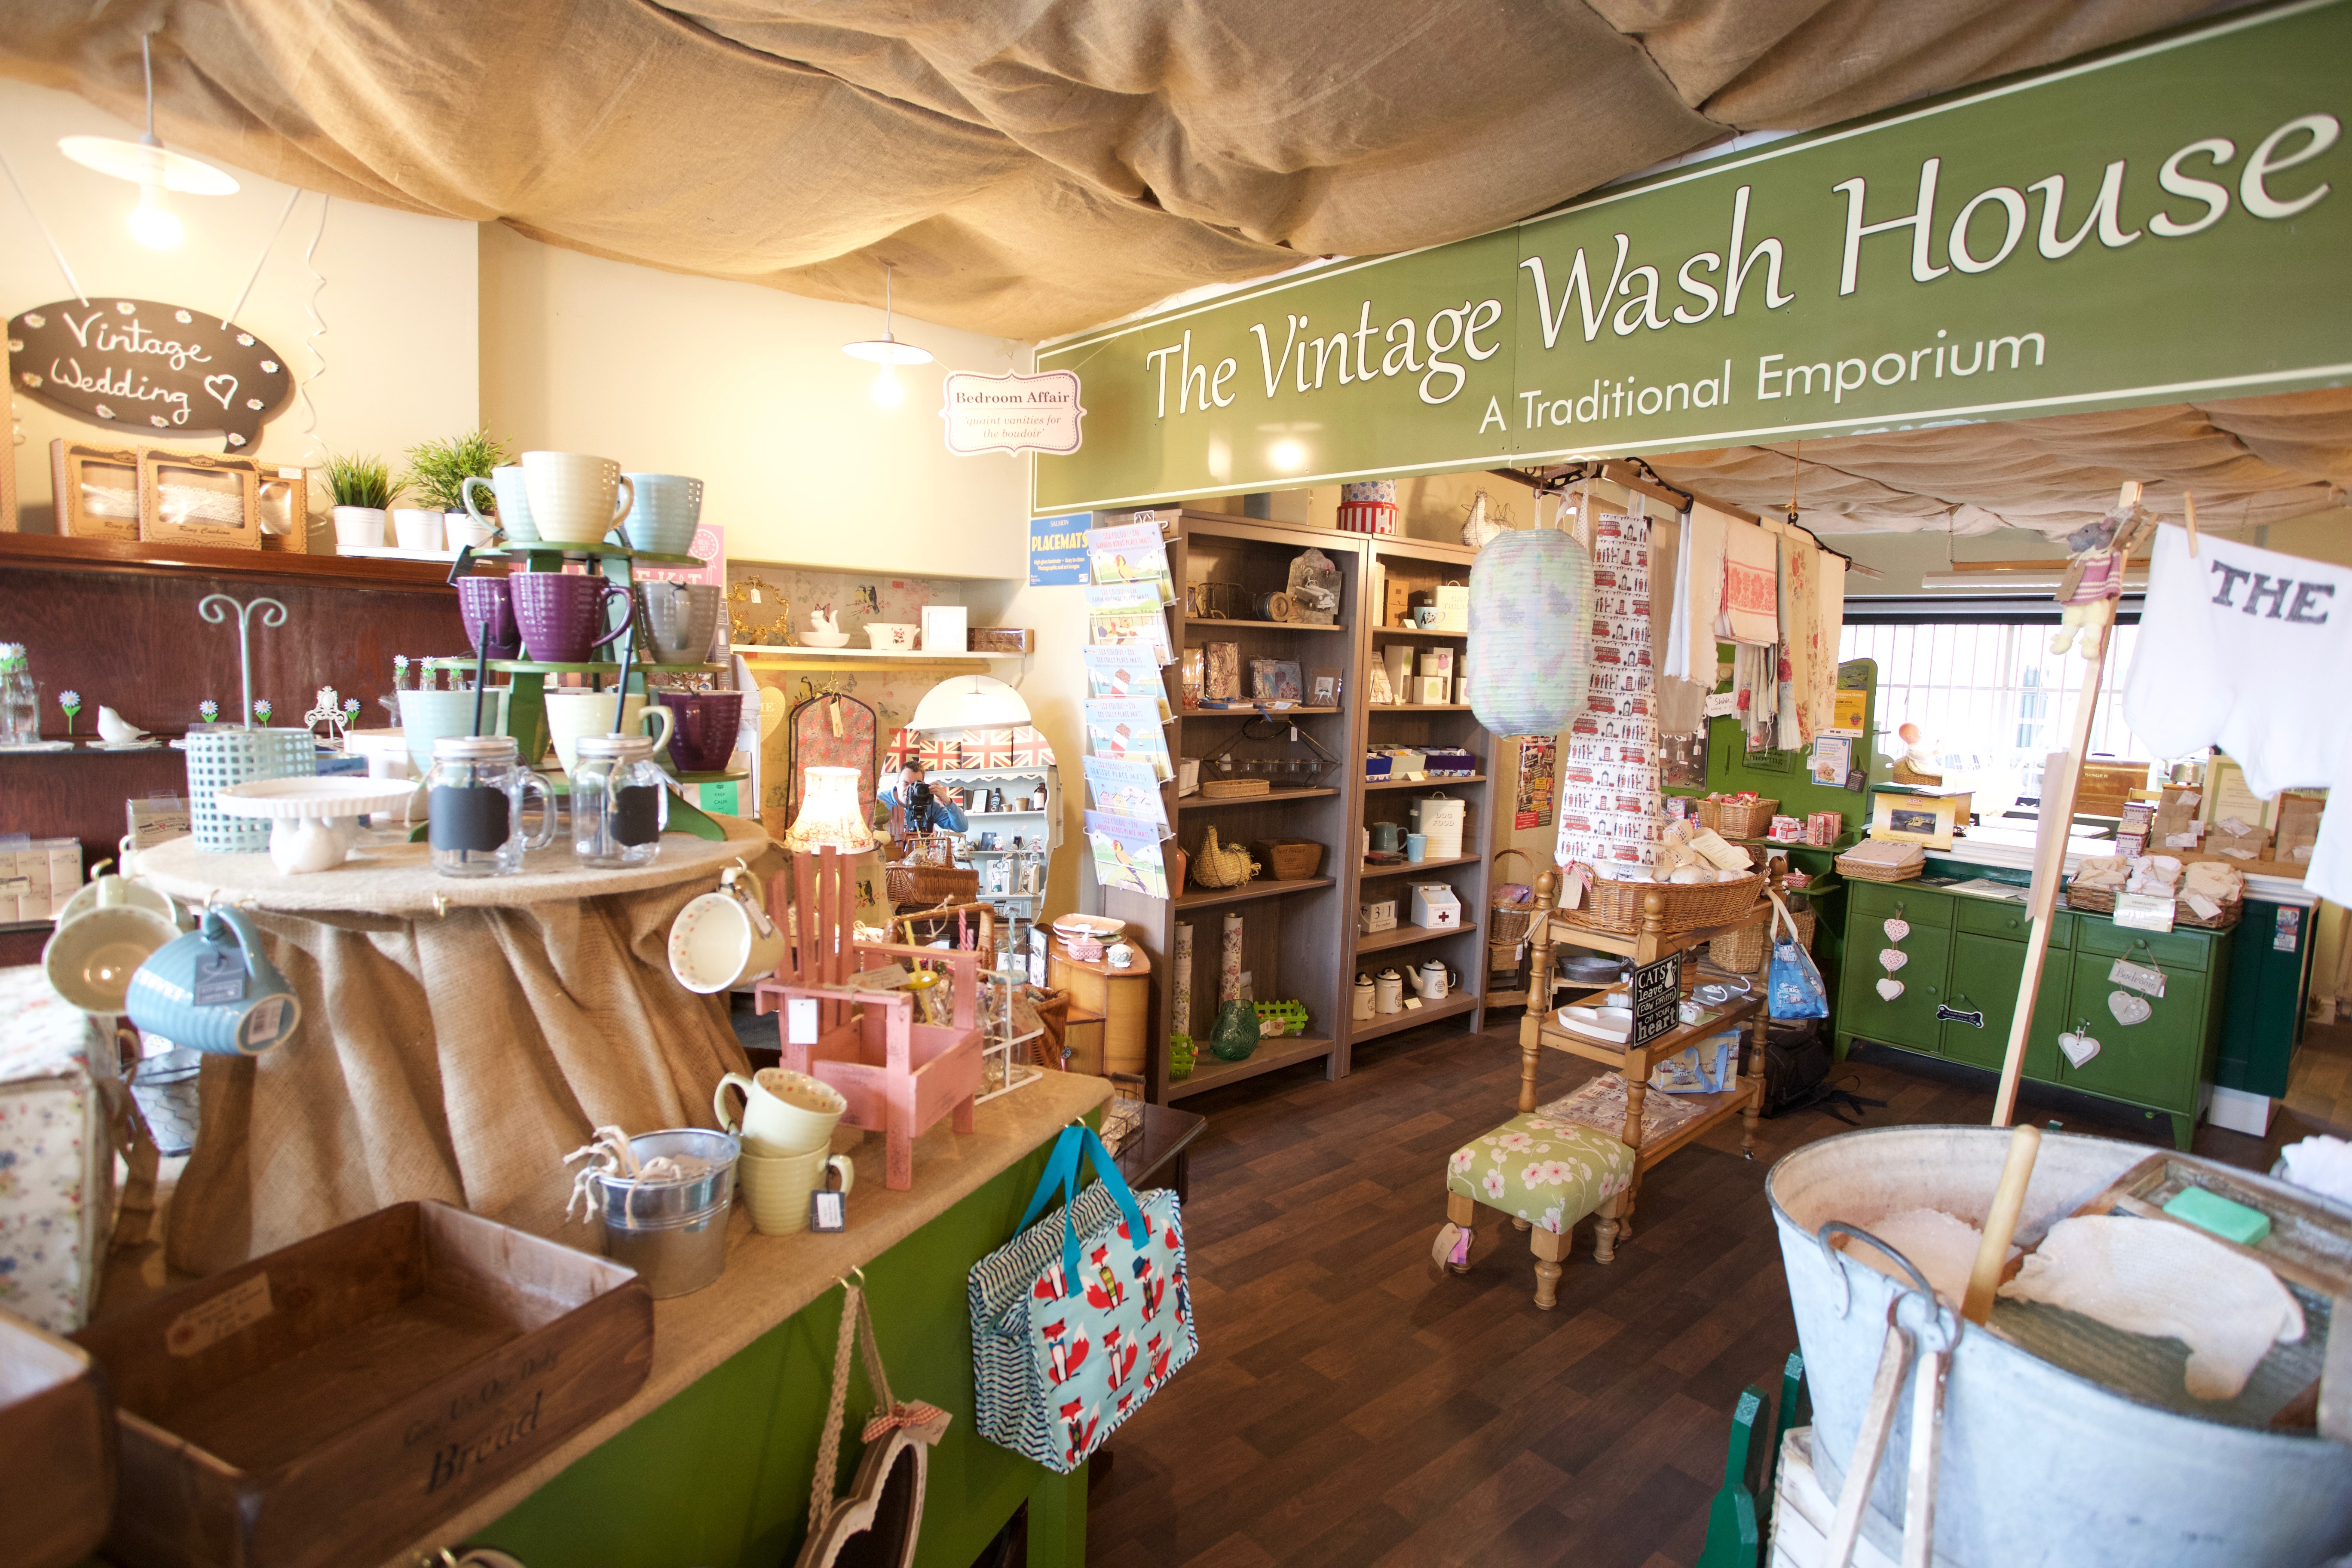 Eco Friendly Cleaning Products The Vintage Wash House